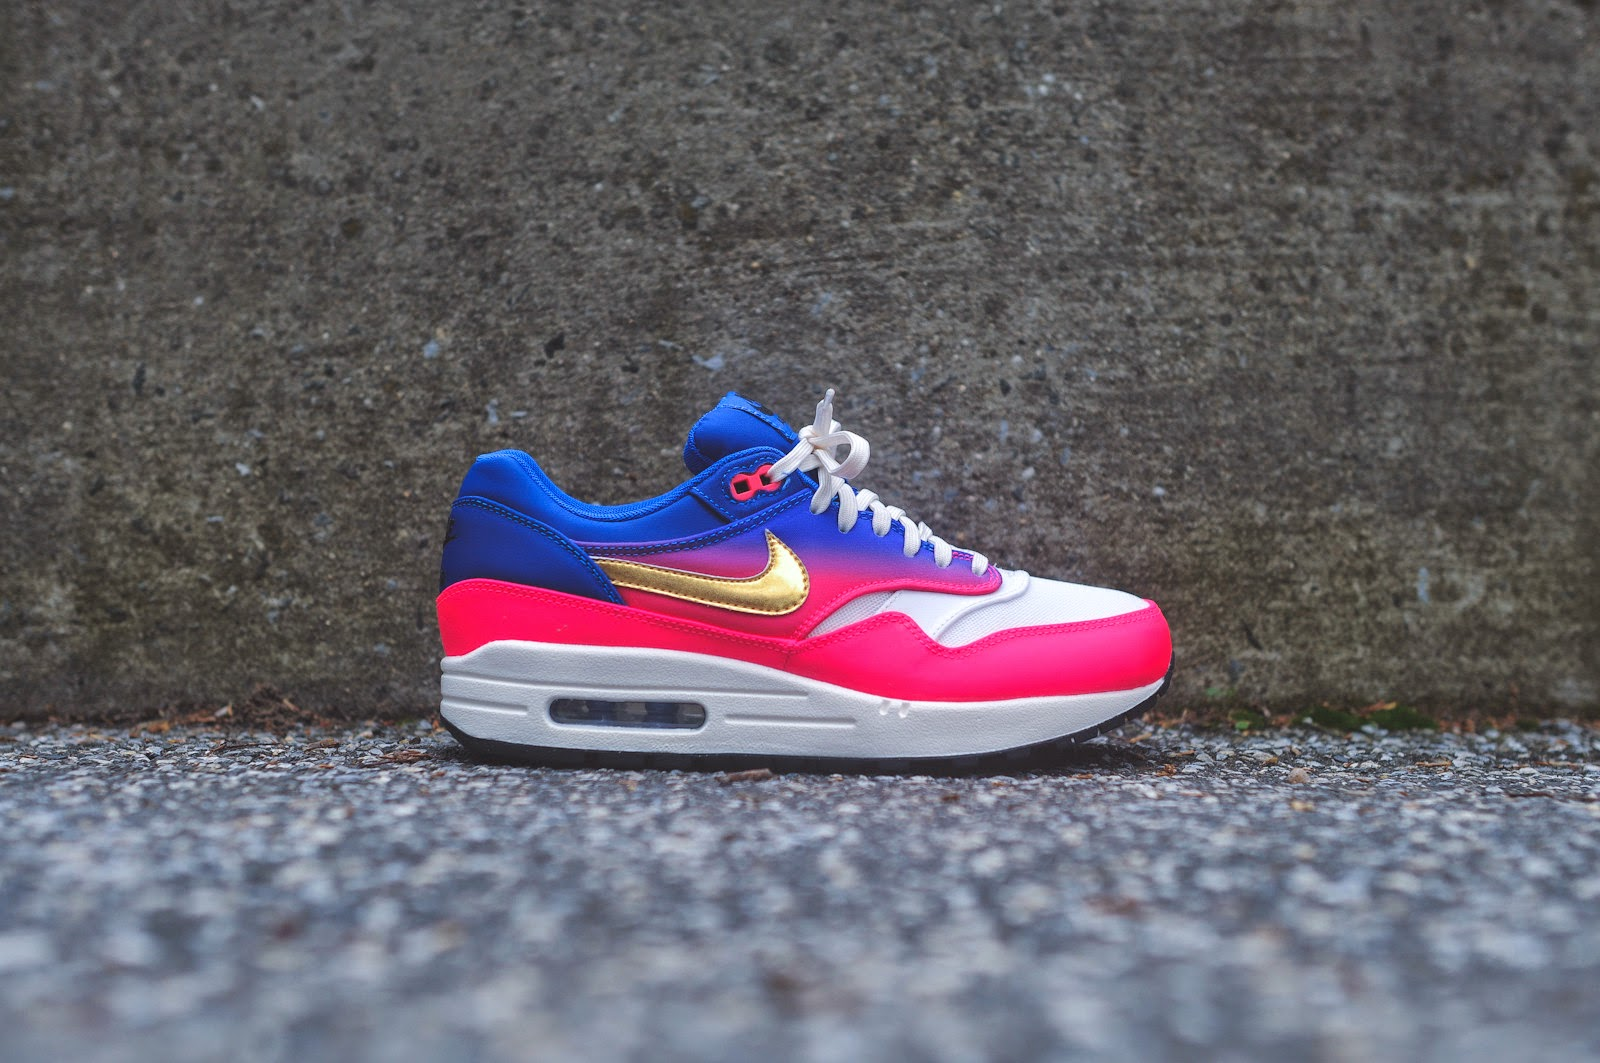 finest selection 8f83b 9e1f7 Nike Women s Air Max 1 Premium QS Mercurial - Ivory   Hyper Punch   Game  Royal